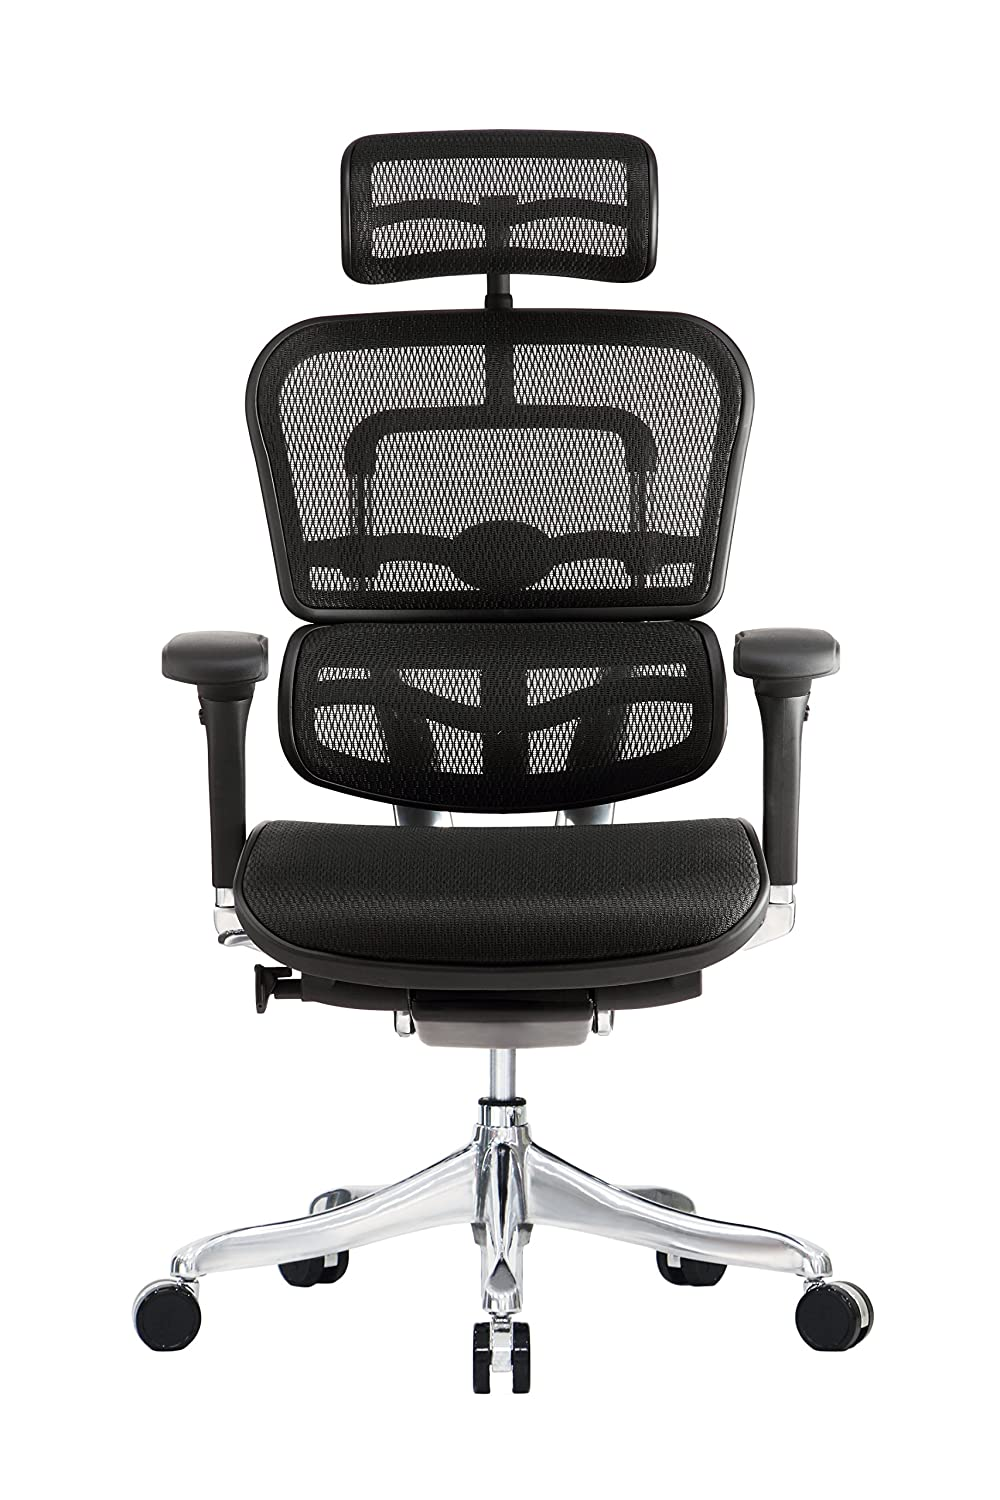 Eurotech Seating Ergo Elite High Back Chair, Black